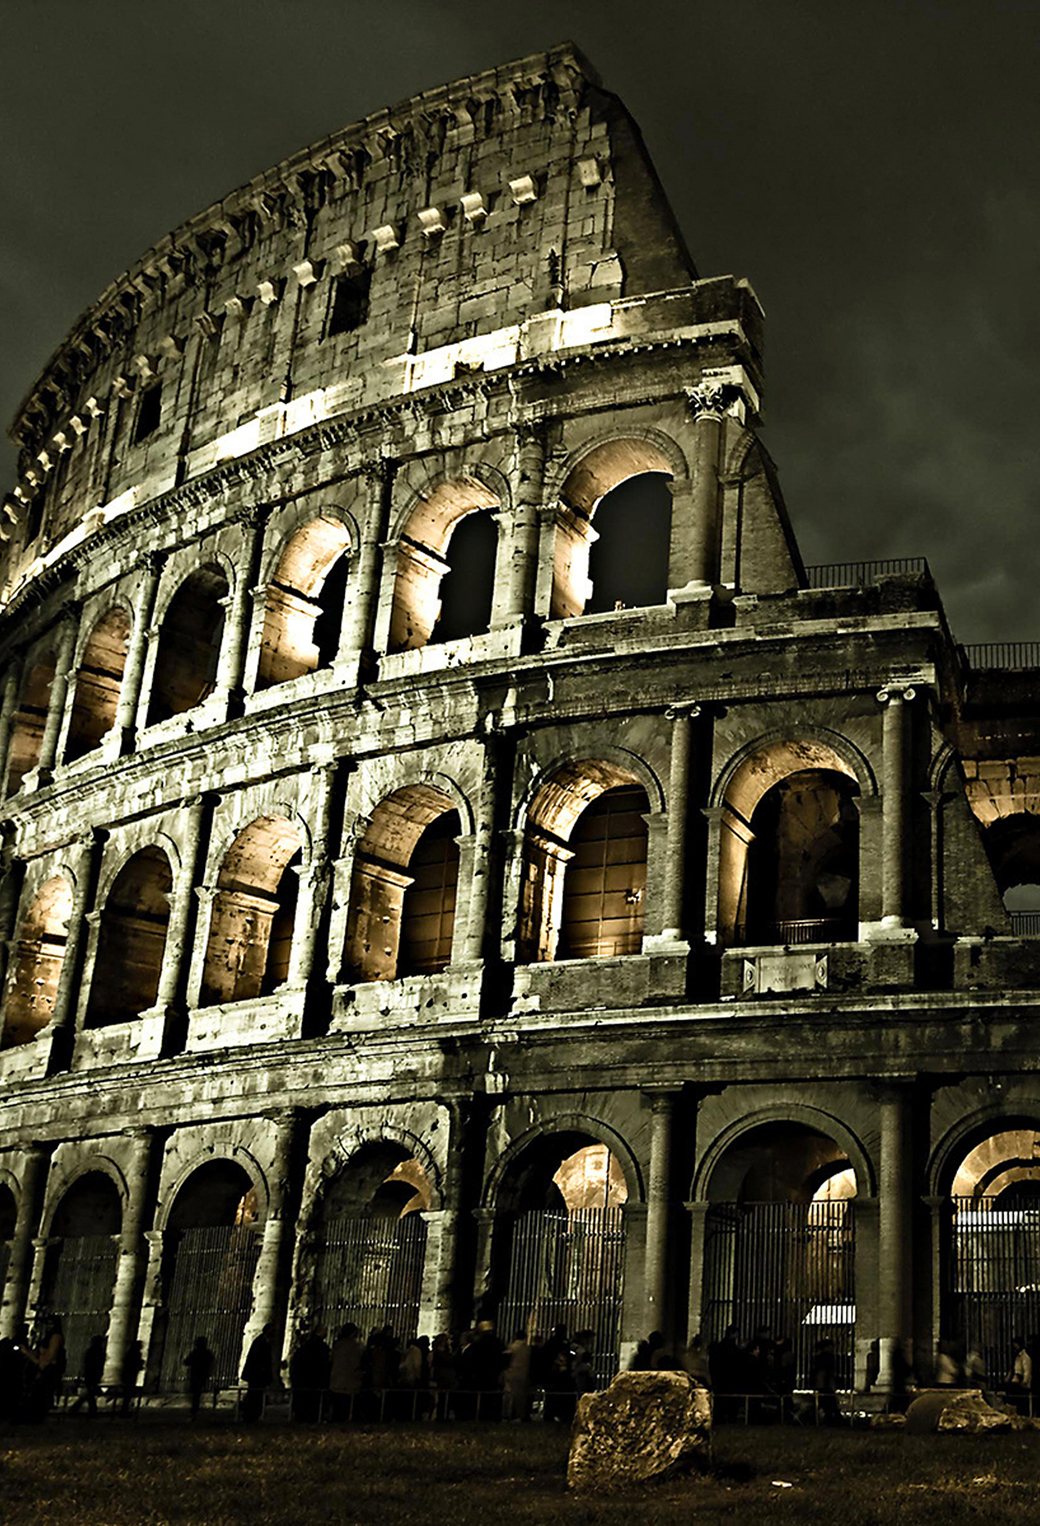 Colosseum Rome Wallpaper For Iphone X 8 7 6 Free